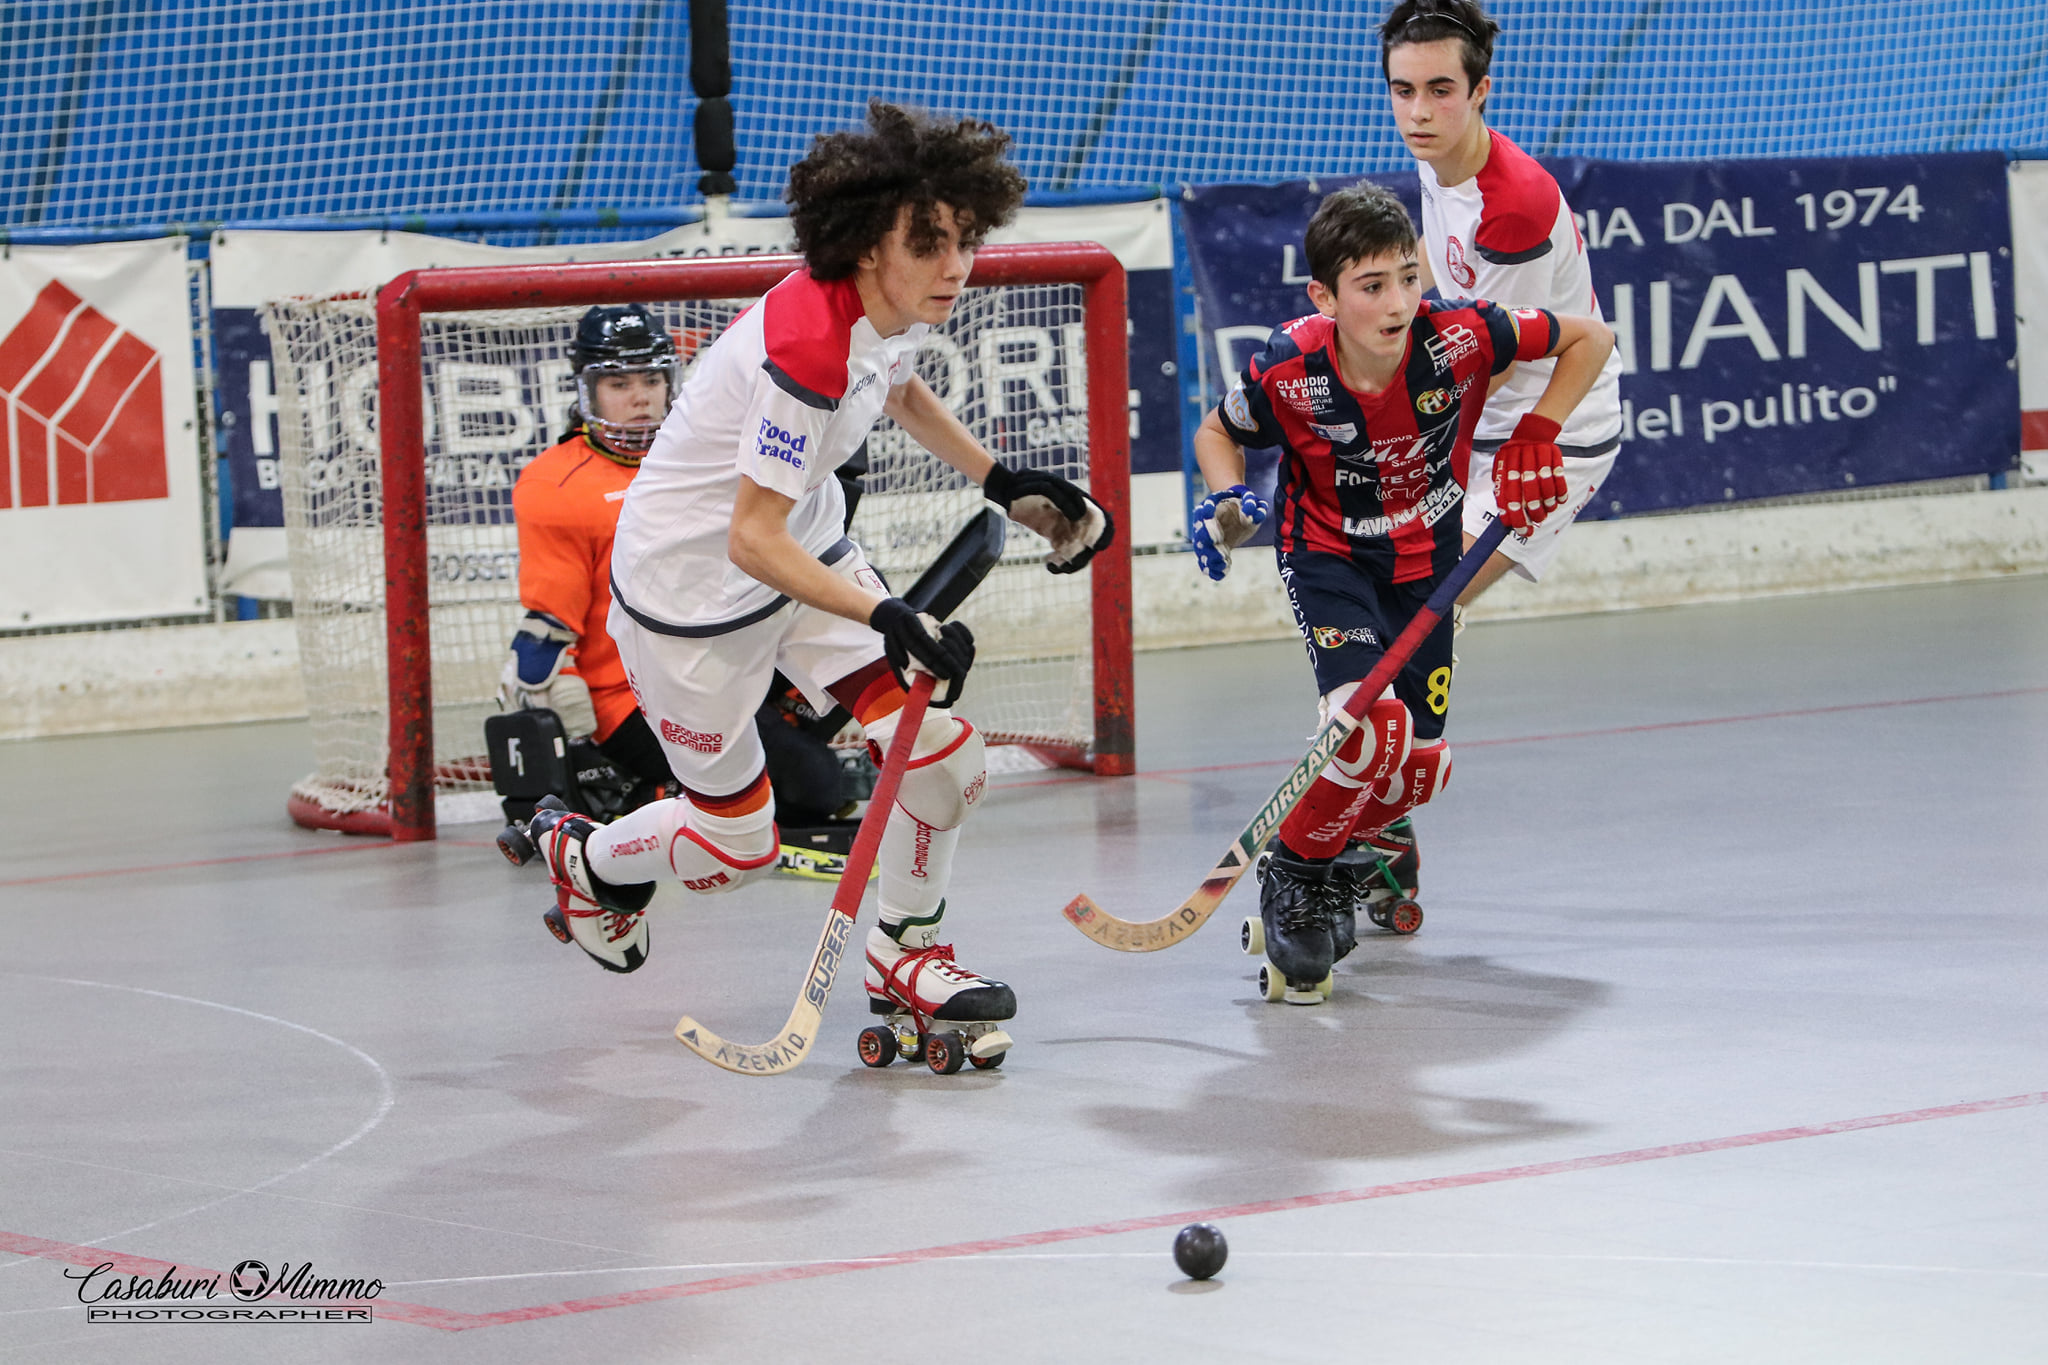 hockey-pista-circolo-pattinatori-grosseto-Under-15-Cieloverde-Forte-azione-di-gioco